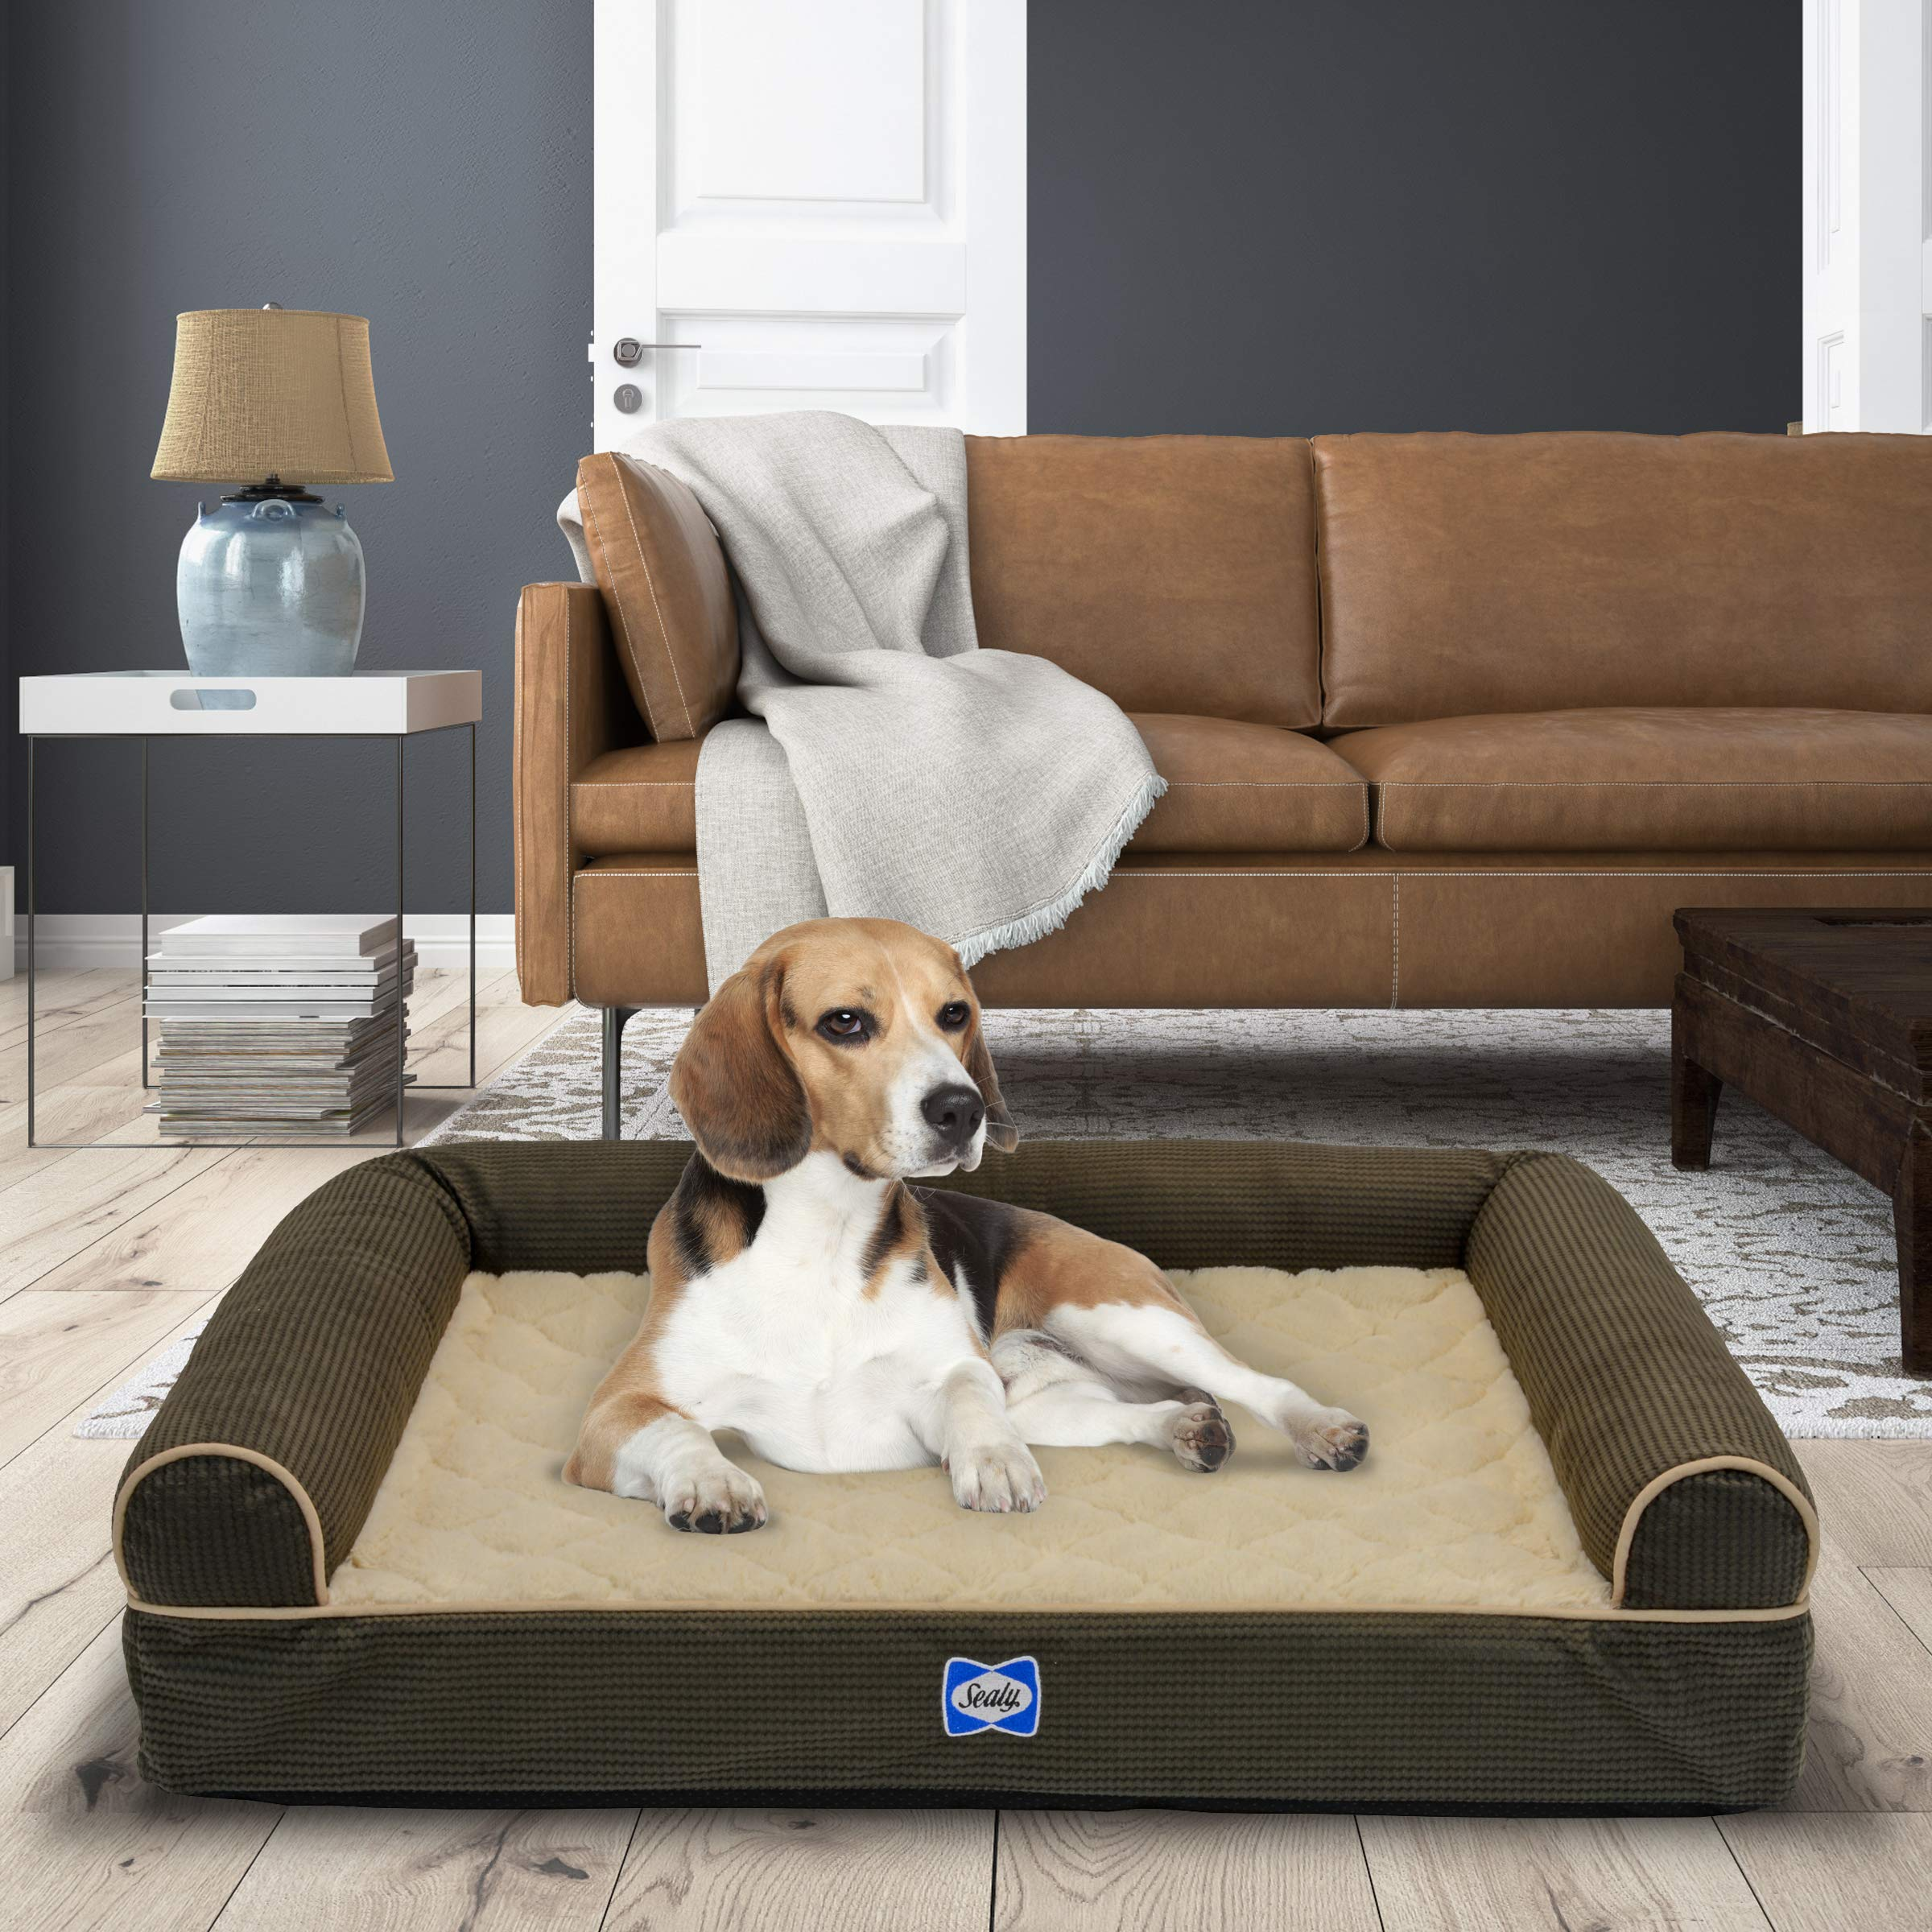 Sealy Ultra Plush Sofa-Style Bolster Dog Bed Brown, Small - Orthopedic Foam Pet Bed with Machine Washable Plush Cover by Sealy Dog Bed